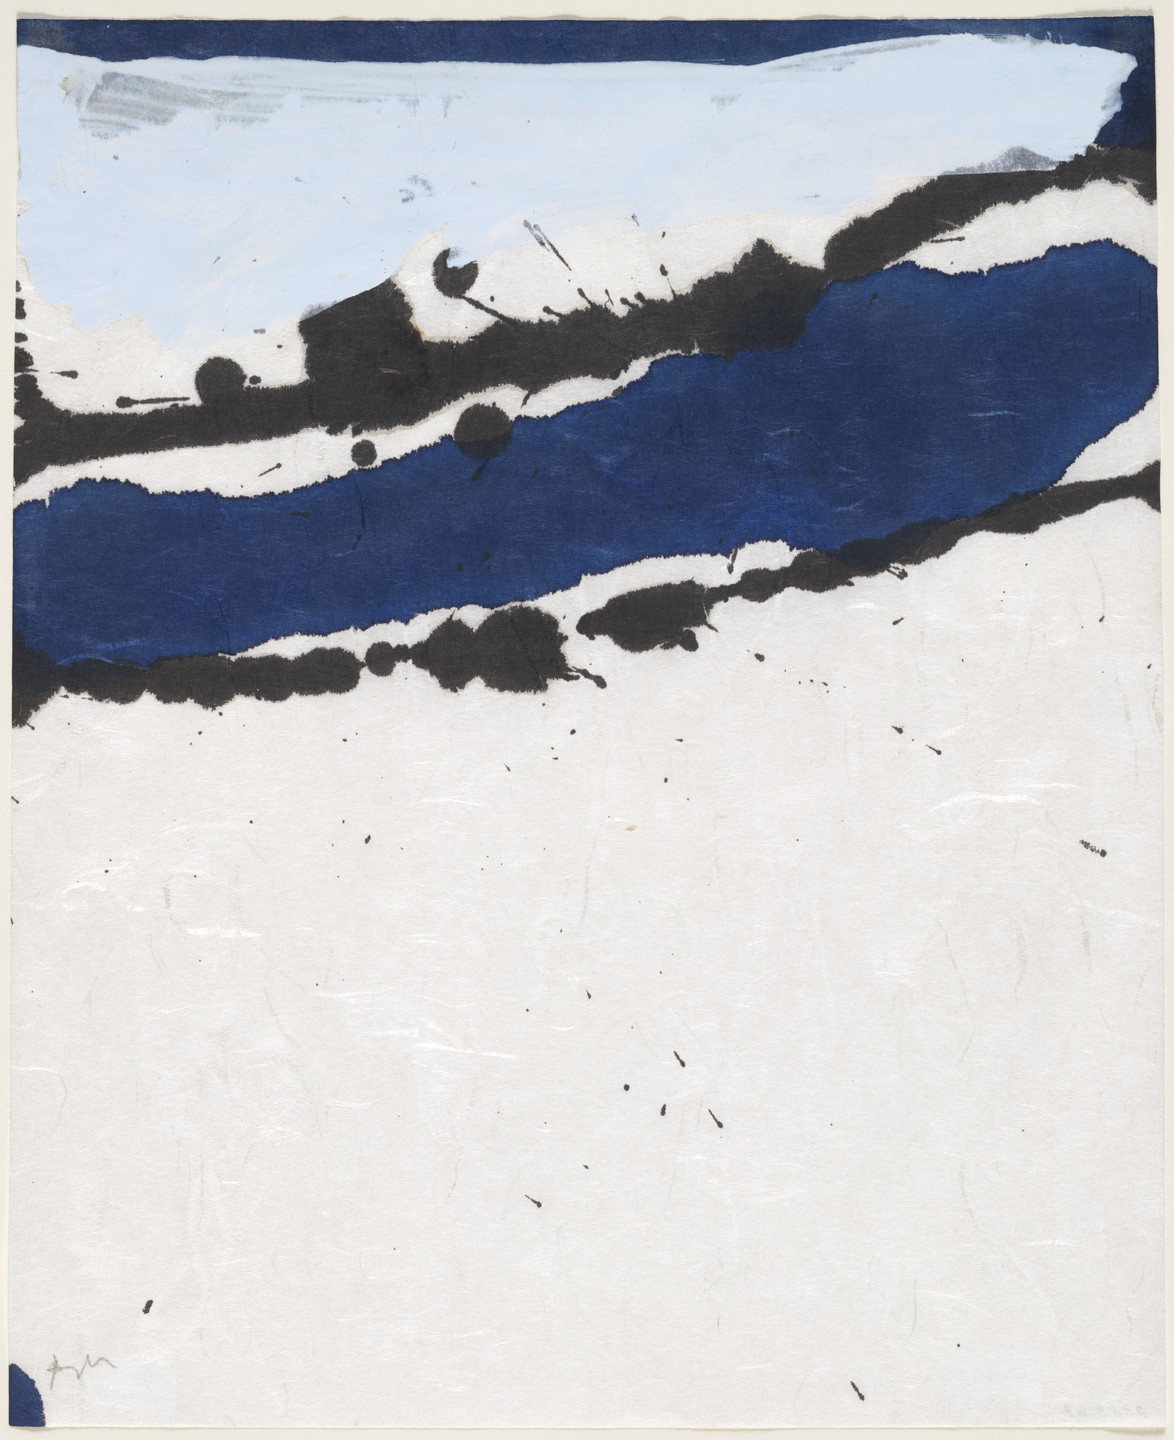 Robert Motherwell. Untitled from the series Lyric Suite. 1965